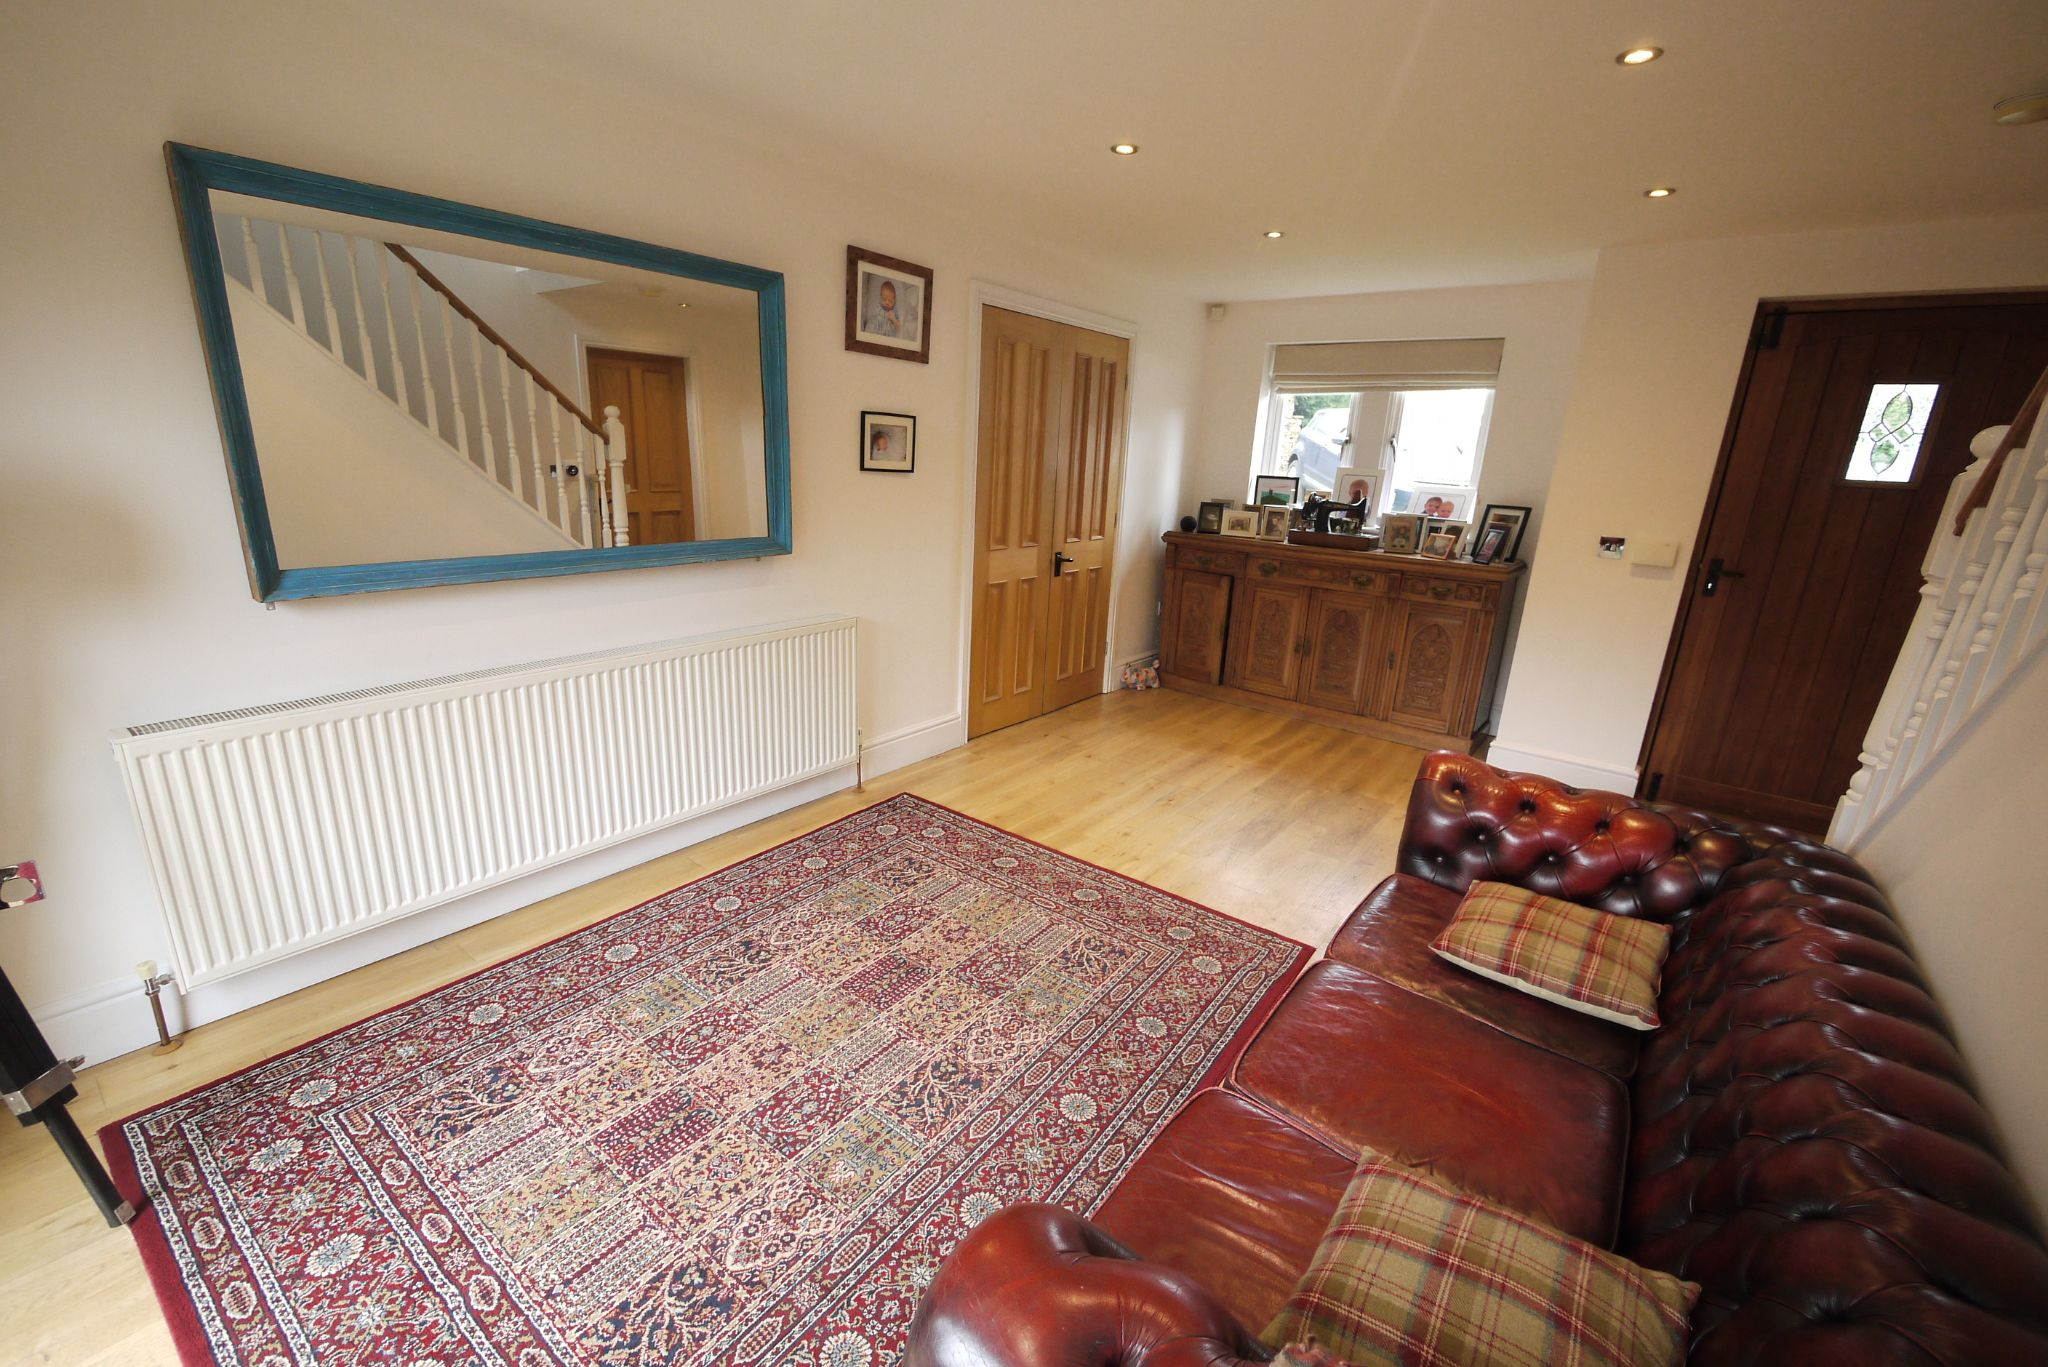 4 bedroom detached house For Sale in Brighouse - Photograph 15.